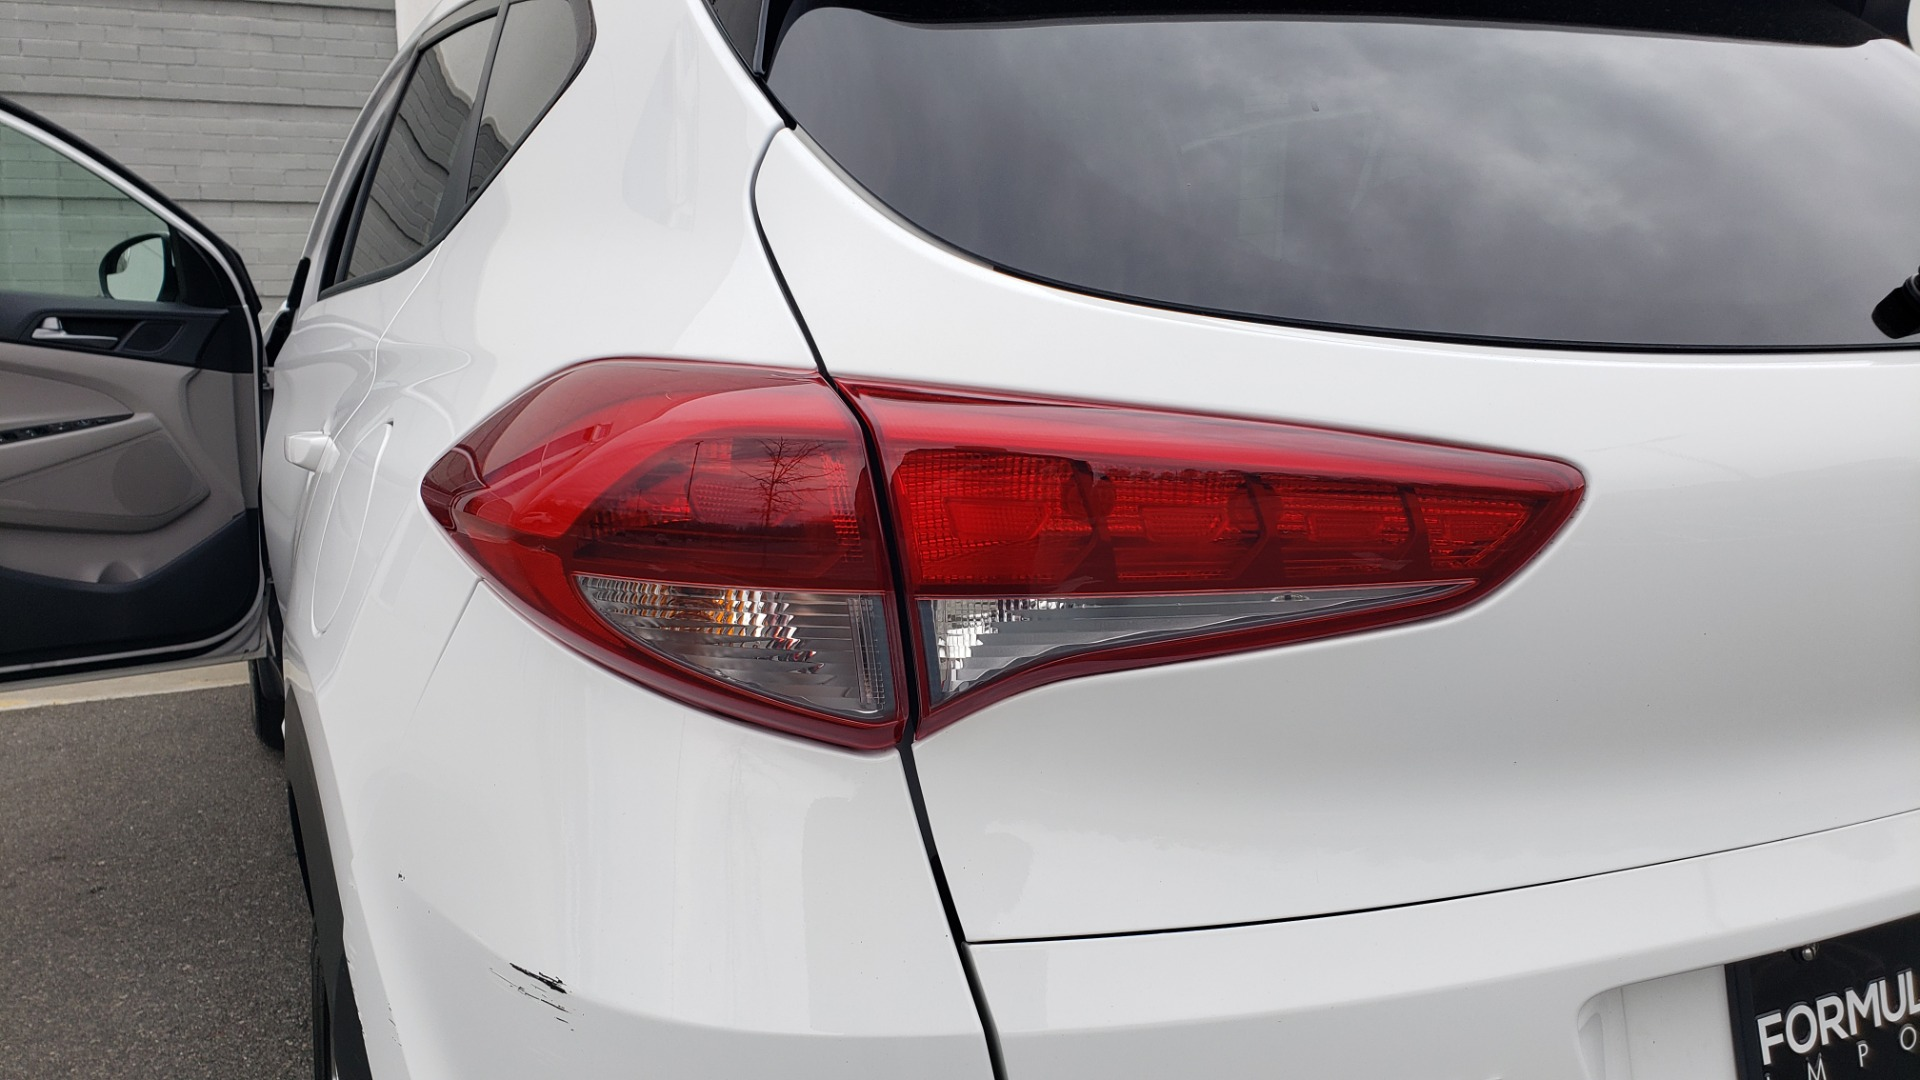 Used 2017 Hyundai TUCSON SE / 2.0L / 6-SPD AUTO / CLOTH / REARVIEW CAMERA for sale Sold at Formula Imports in Charlotte NC 28227 29